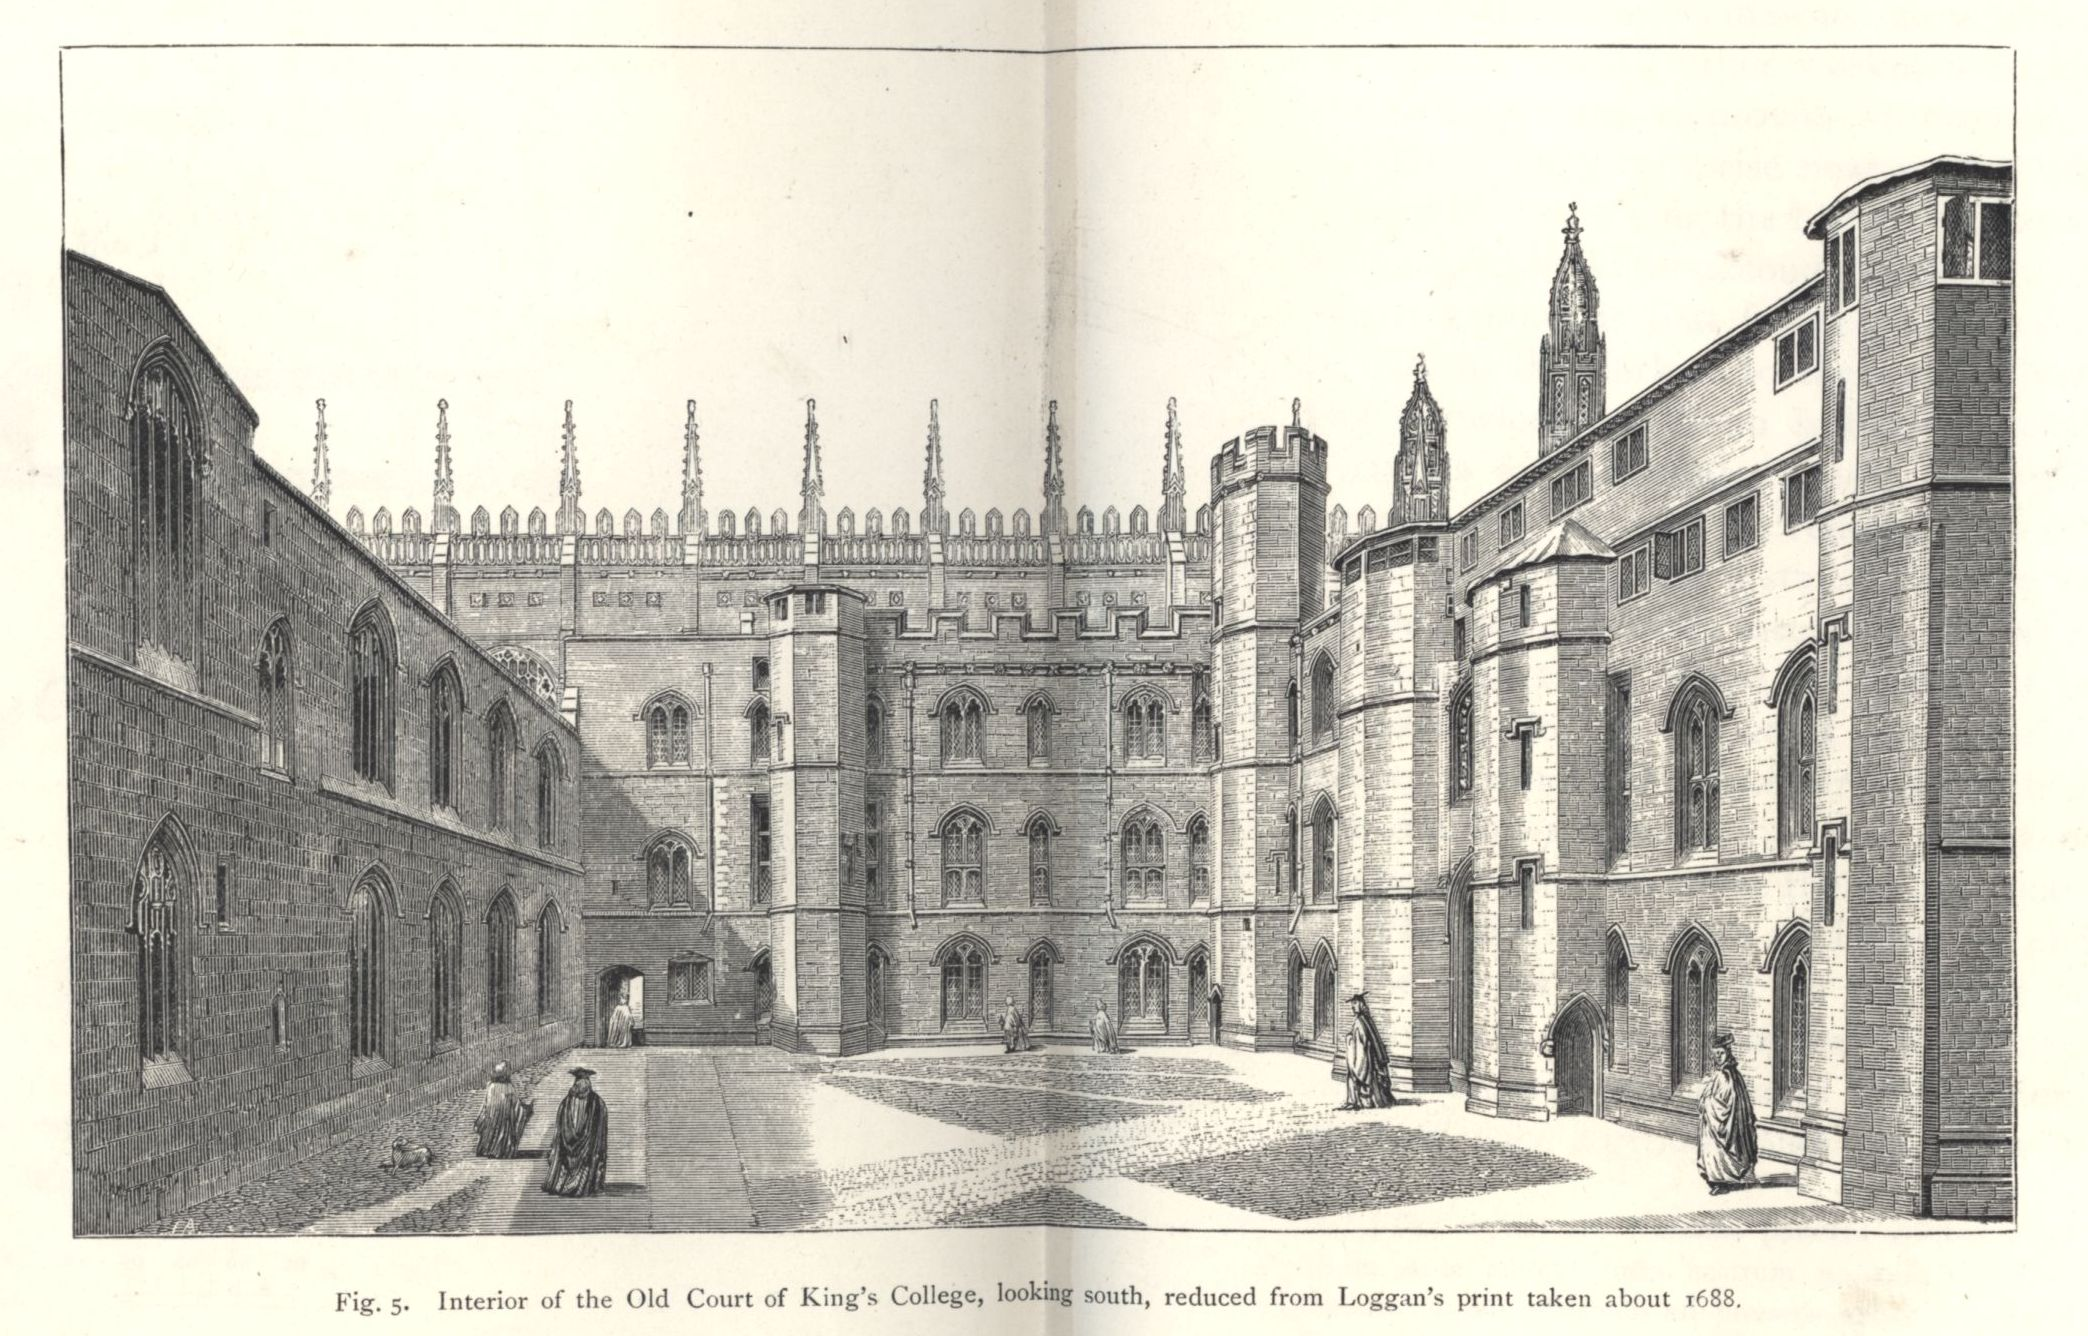 Interior of the Old Court, looking south, reduced from Loggan's print, taken about 1688. [Willis and Clark, vol. 1, p. 324, fig. 5]